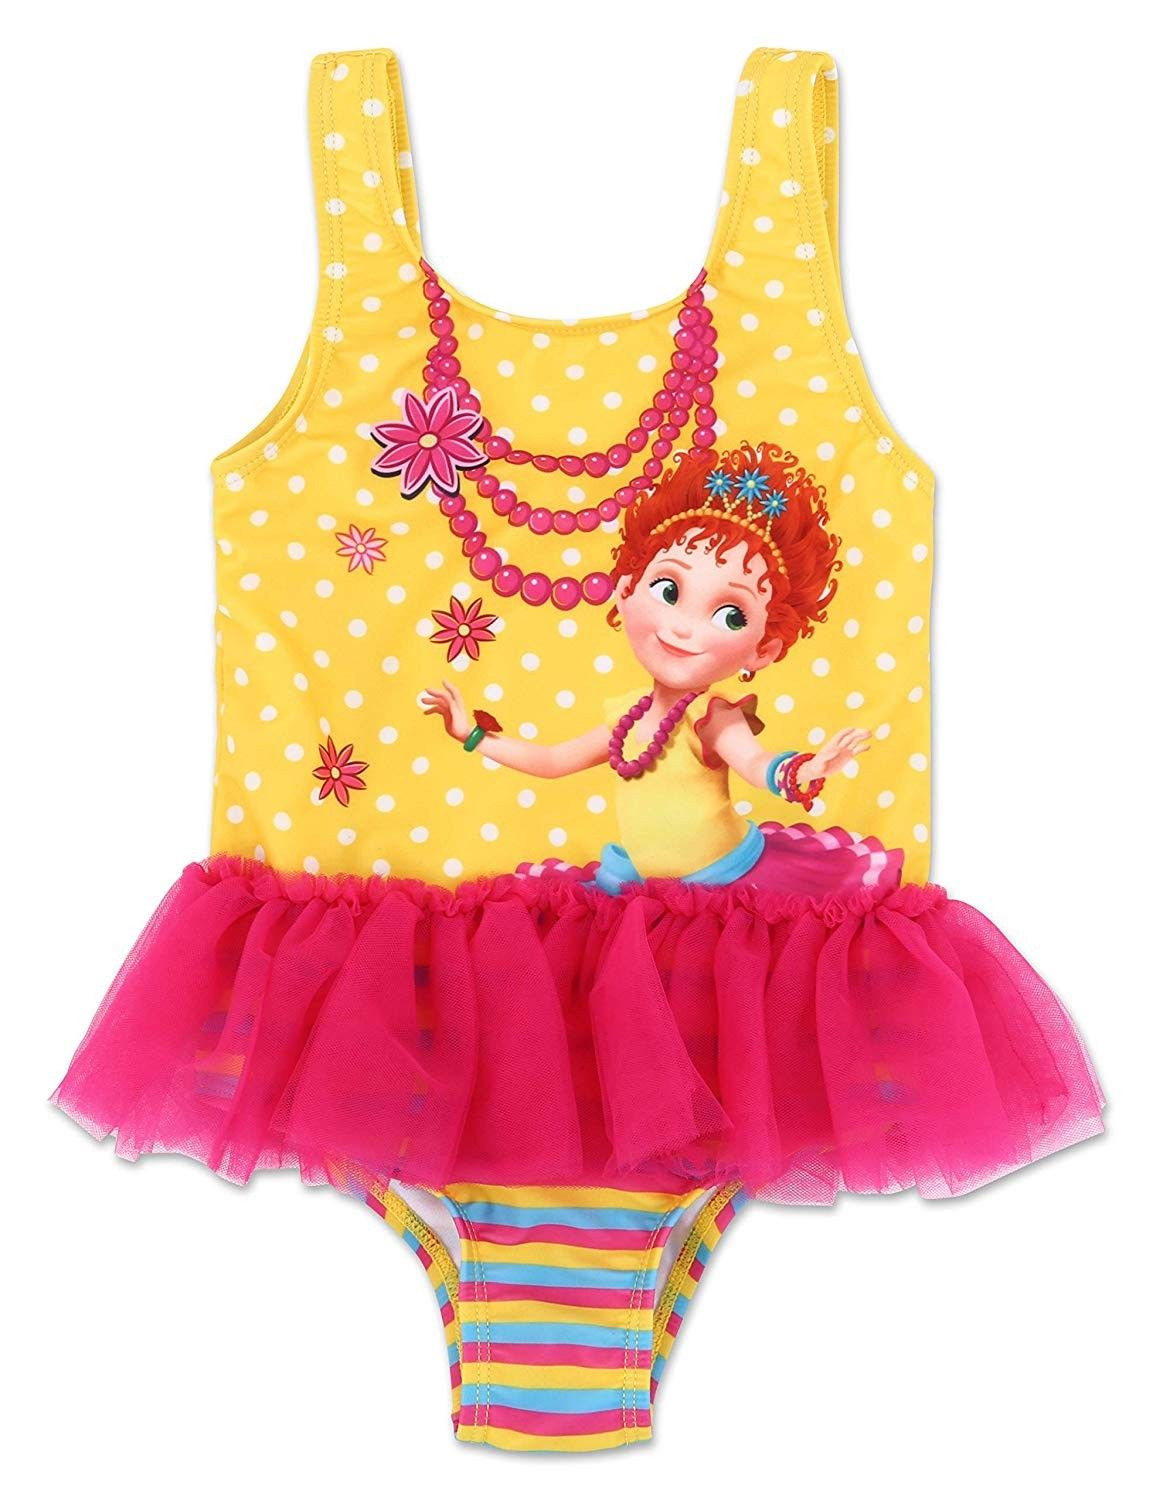 Dreamwave Toddler Girl Authentic Character One Piece Swimsuit UPF 50